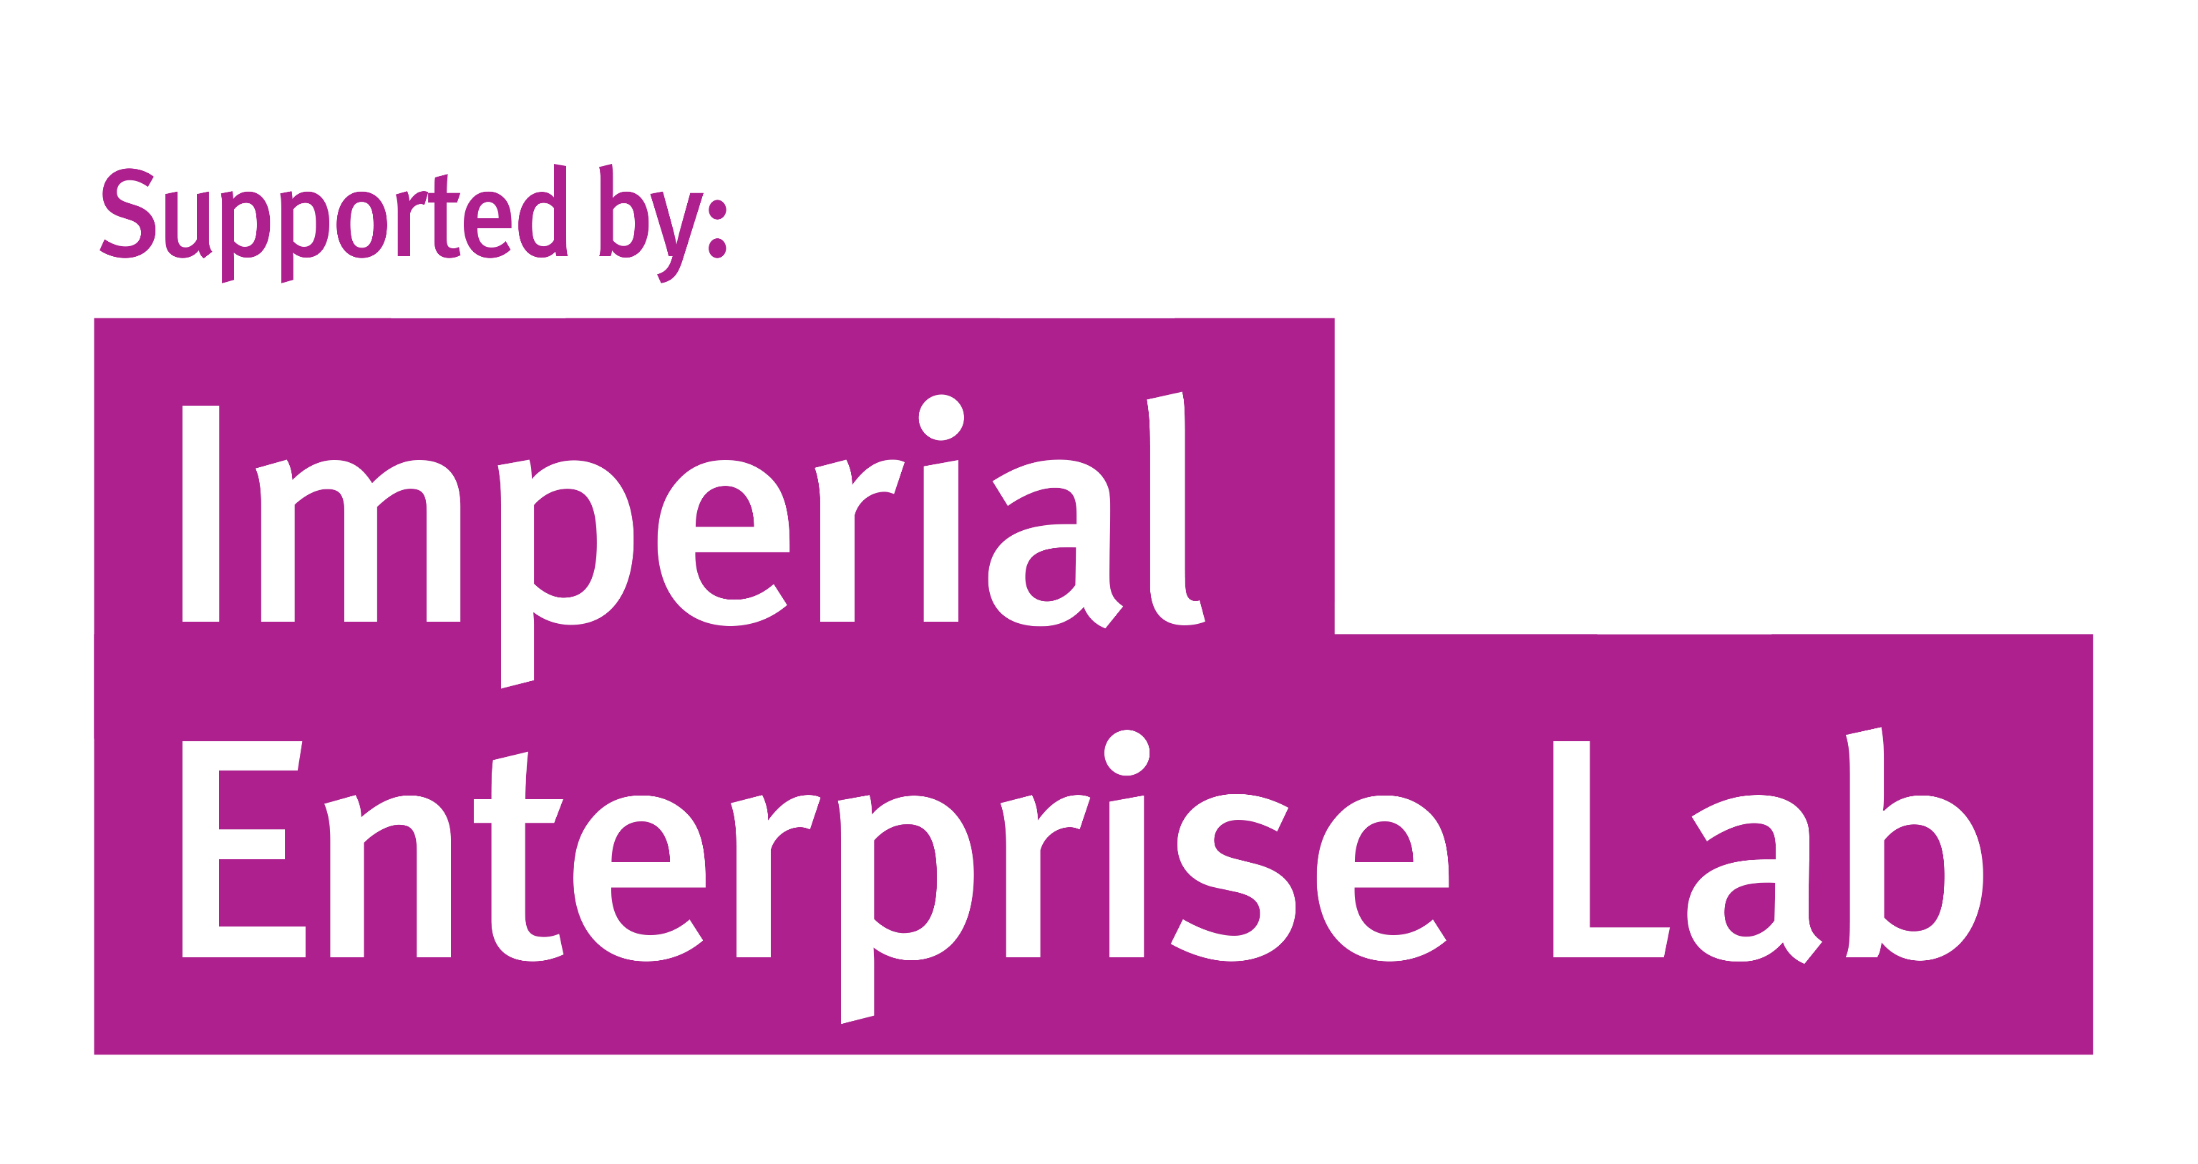 Supported by imperial enterprise lab logo